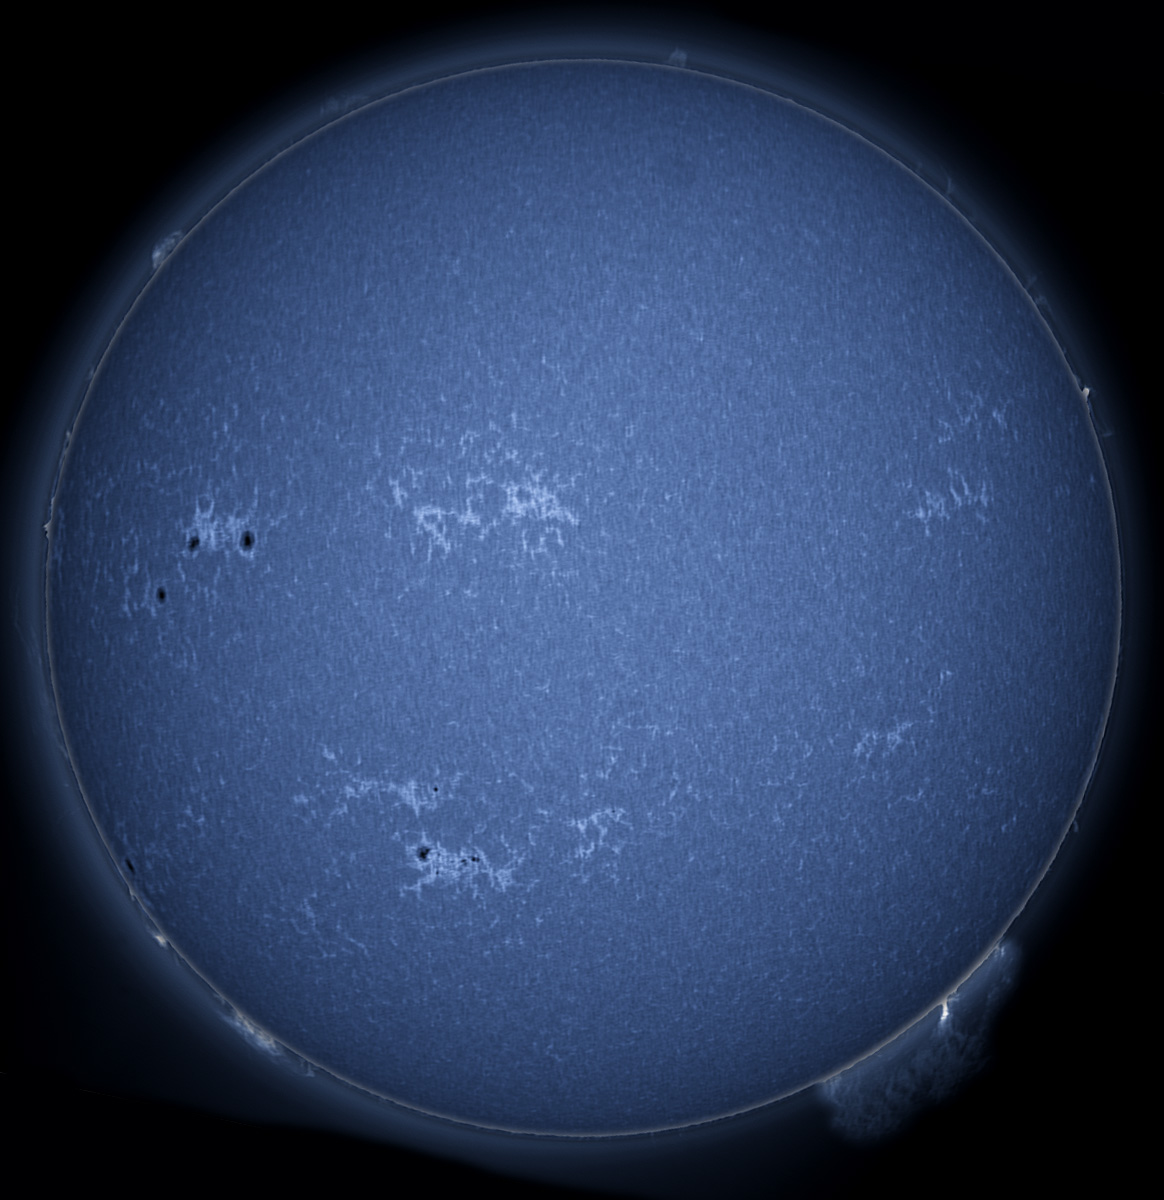 Solar Images In H-alpha, CaK, And White Light 11/10/2012